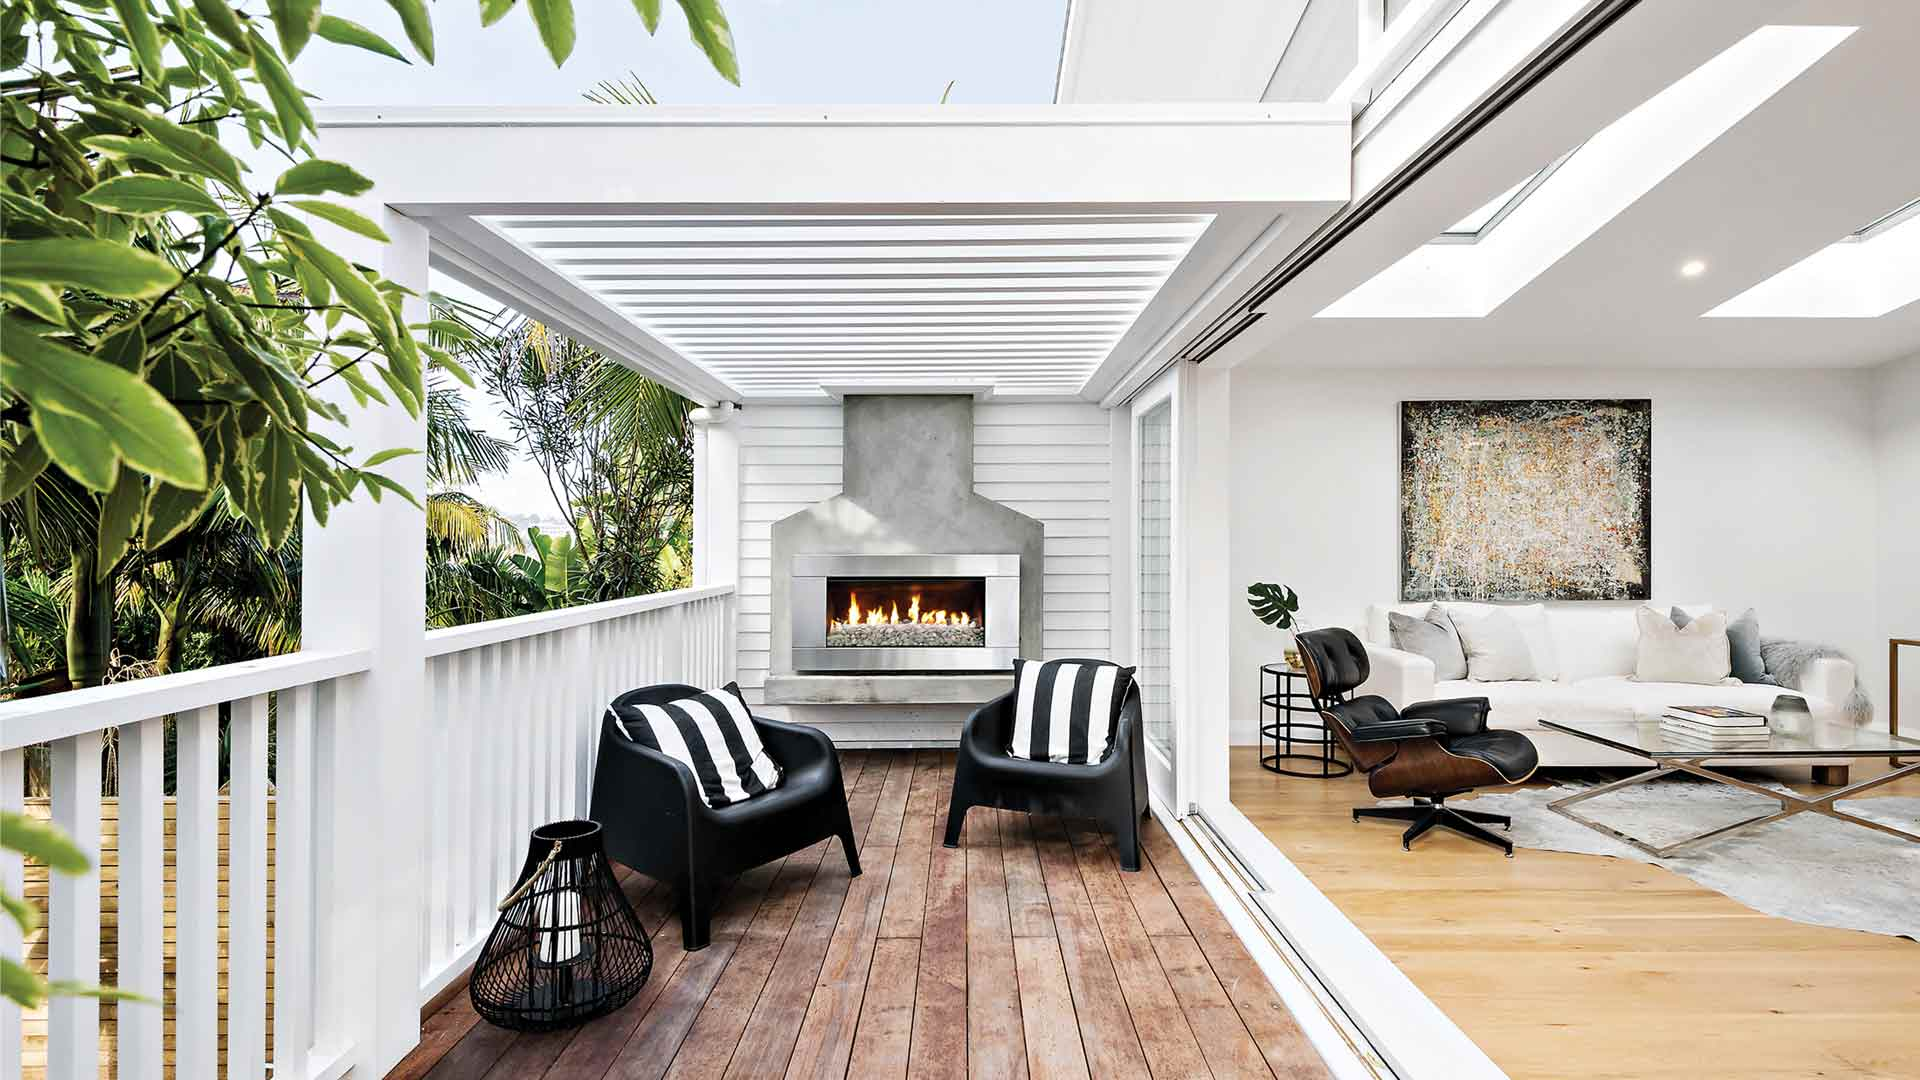 A Californian Bungalow Renovation with Escea Outdoor Gas Fireplace